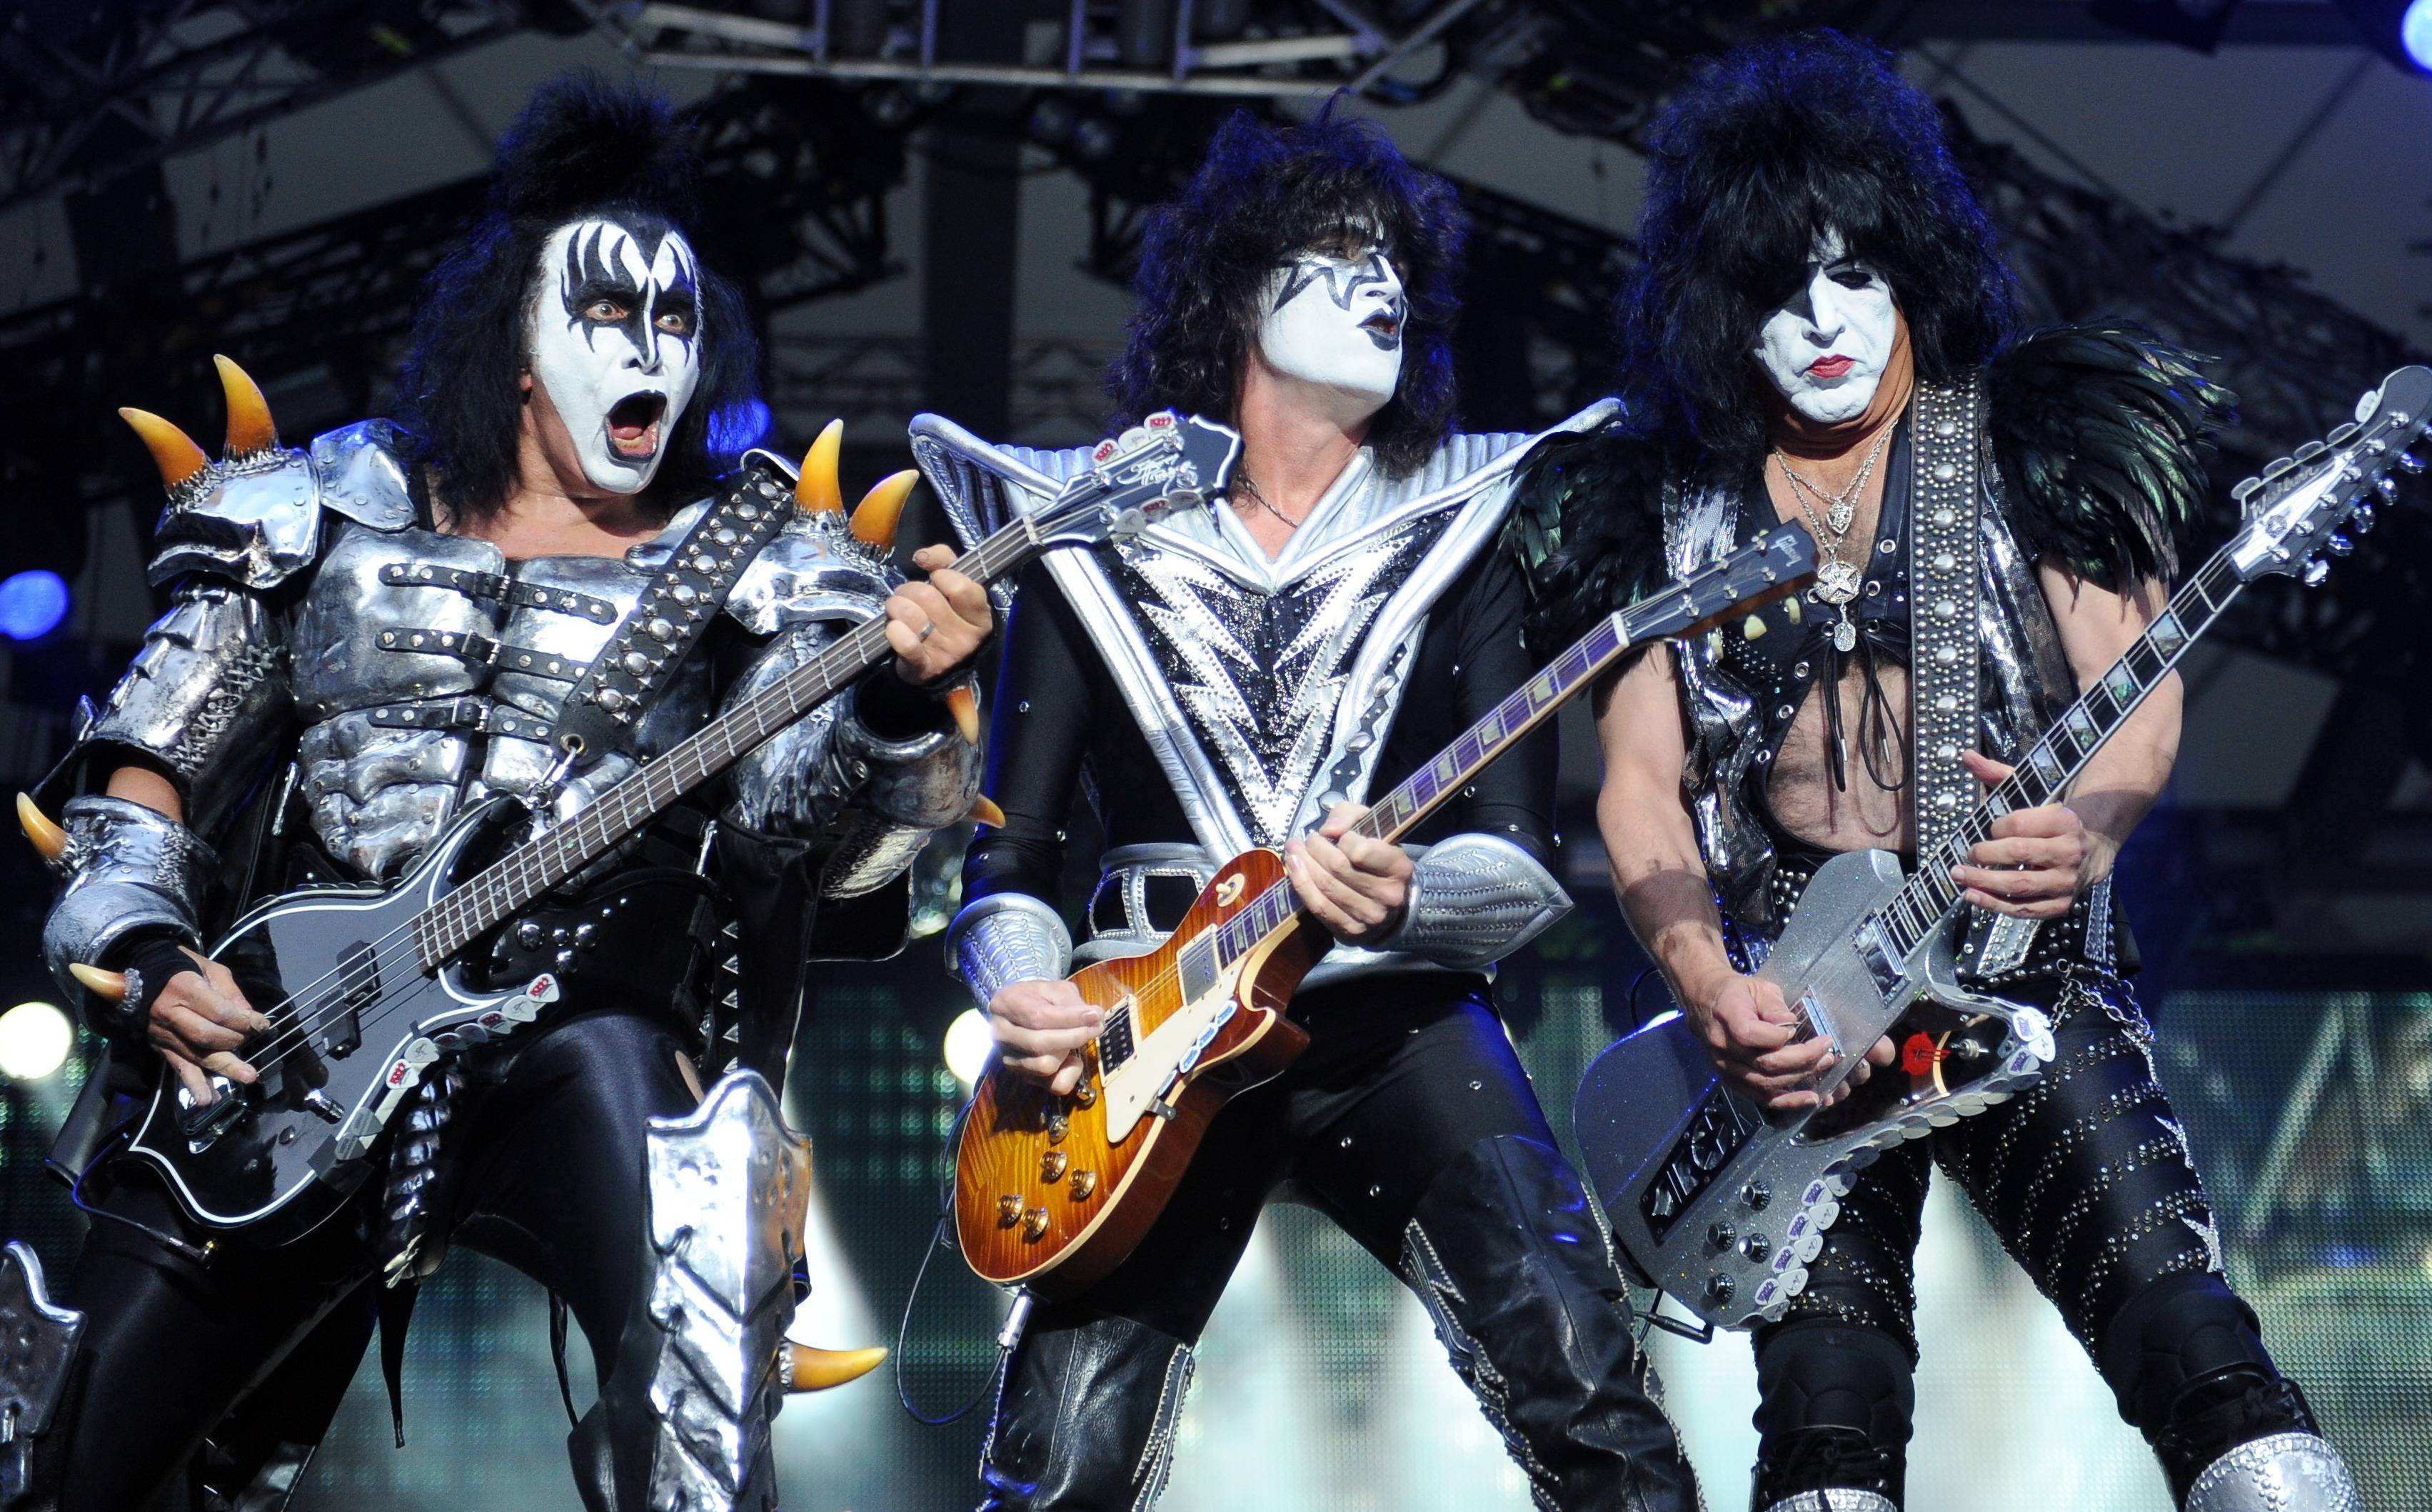 From left: KISS bassist Gene Simmons, guitarist Tommy Thayer and singer Paul Stanley of Kiss perform onstage in 2013 in Berlin, Germany. KISS announced Sunday that the band will not perform when they are inducted into the Rock and Roll Hall of Fame in Cleveland in April. The 40-year-old band is unable to agree on which lineup should perform during the April 10 ceremony in New York City.